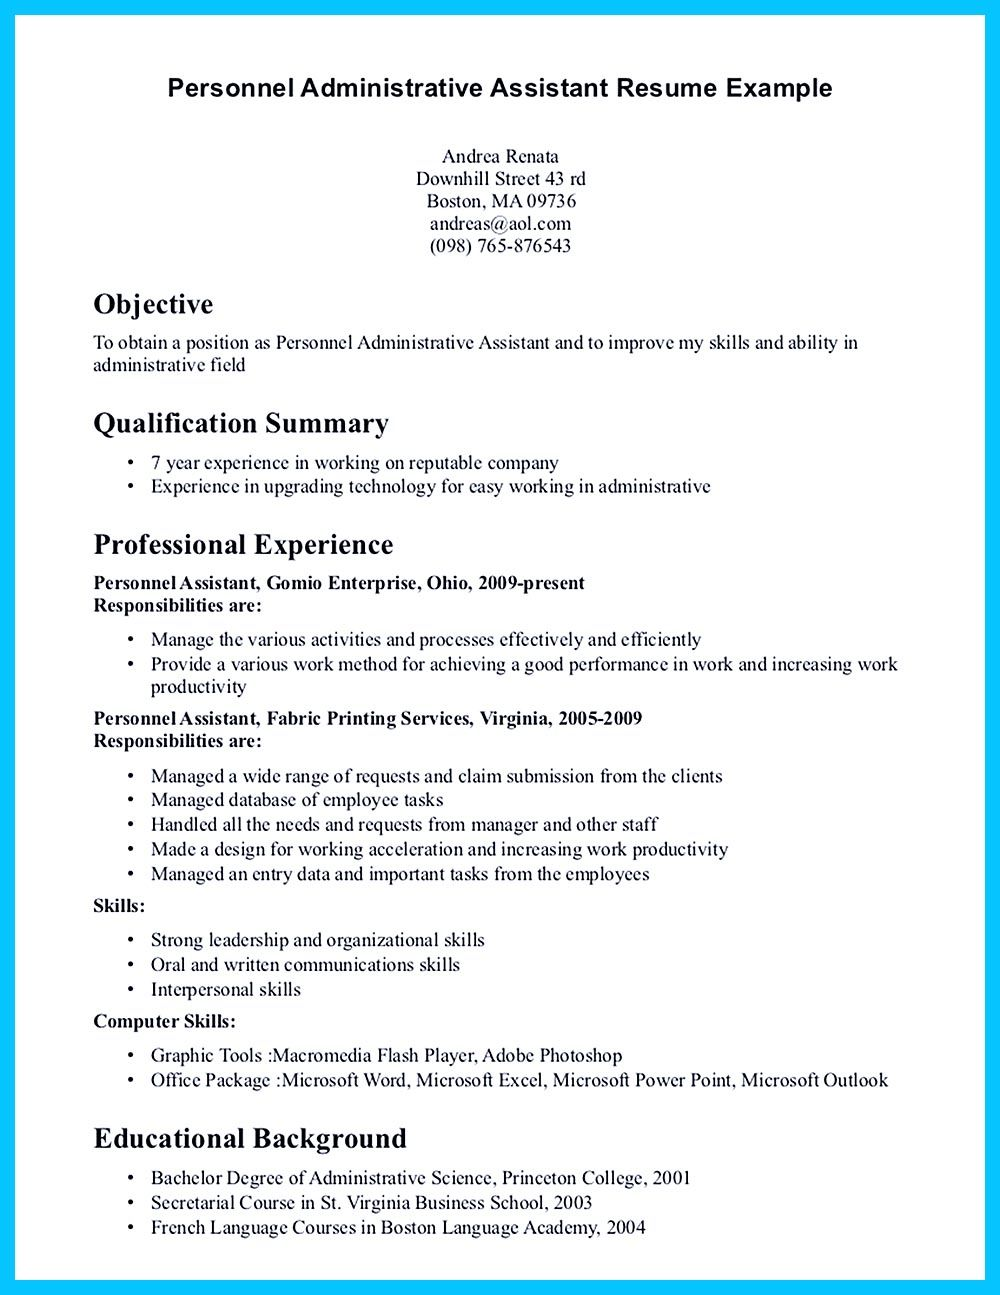 Superb In Writing Entry Level Administrative Assistant Resume, You Need To  Understand What You Will Write. Resume ProfileResume Cover LettersResume ...